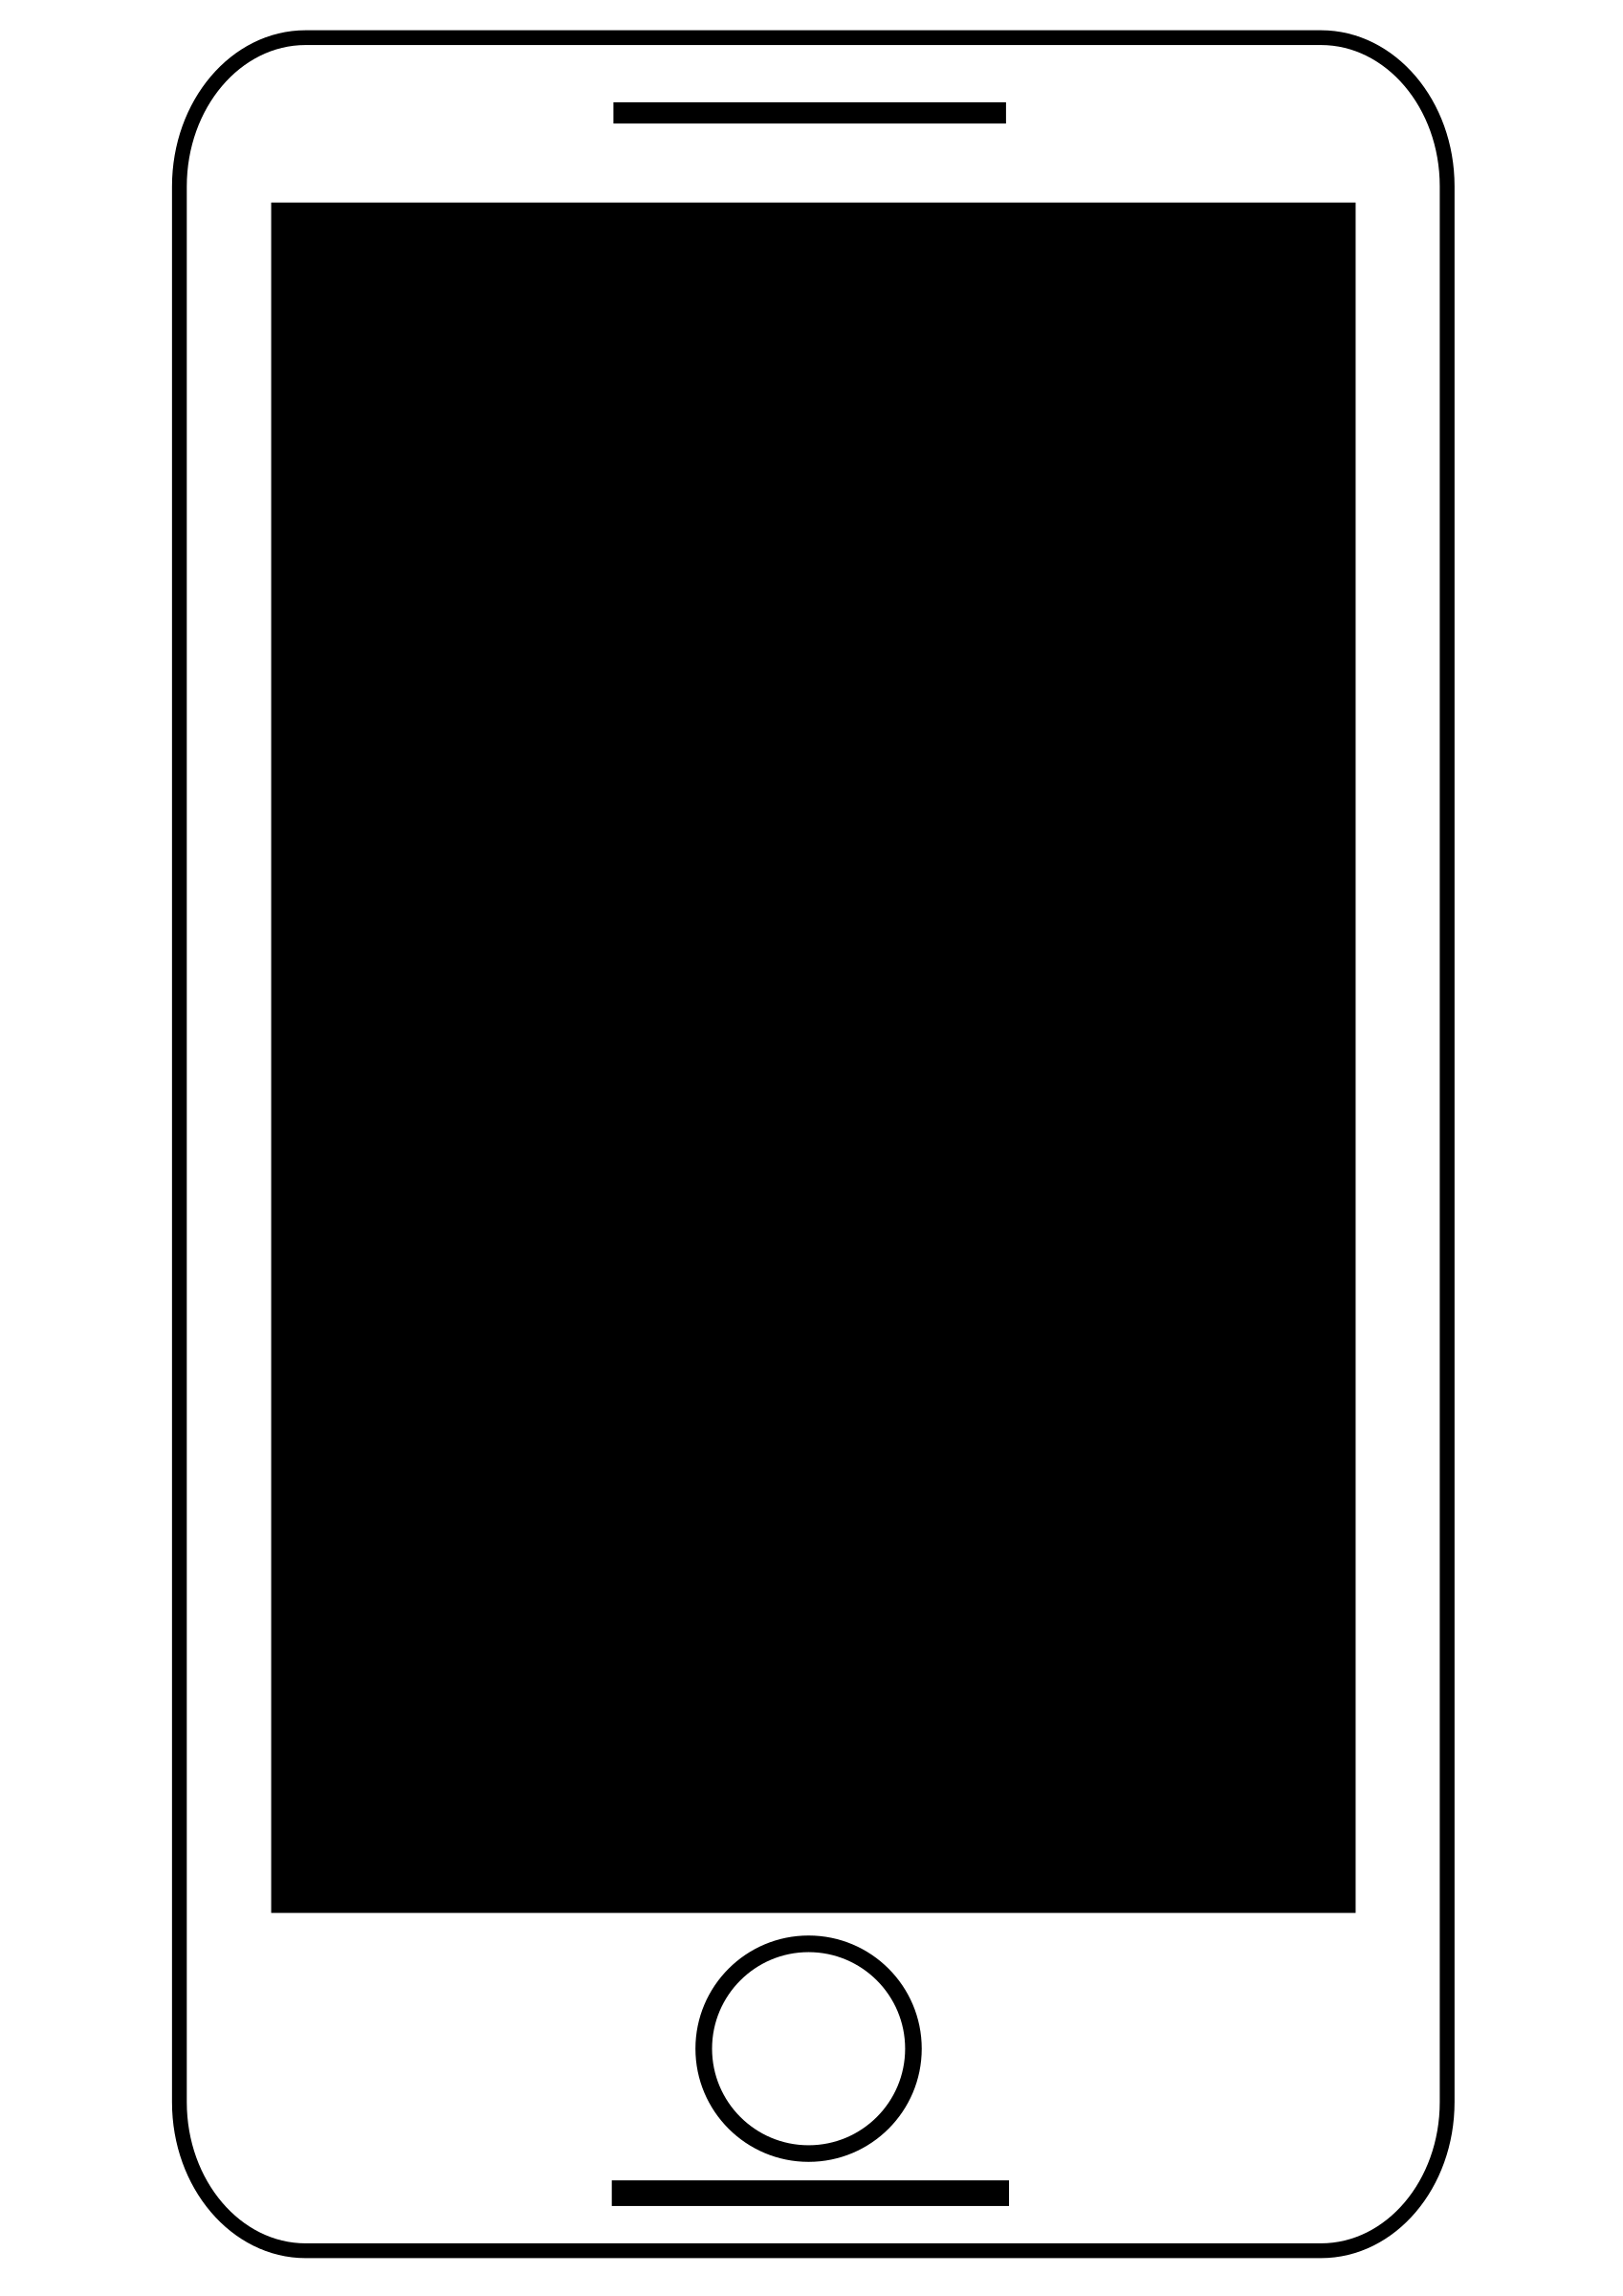 Smartphone - Tablet Black And White Free Clipart Icon by schoolfreeware